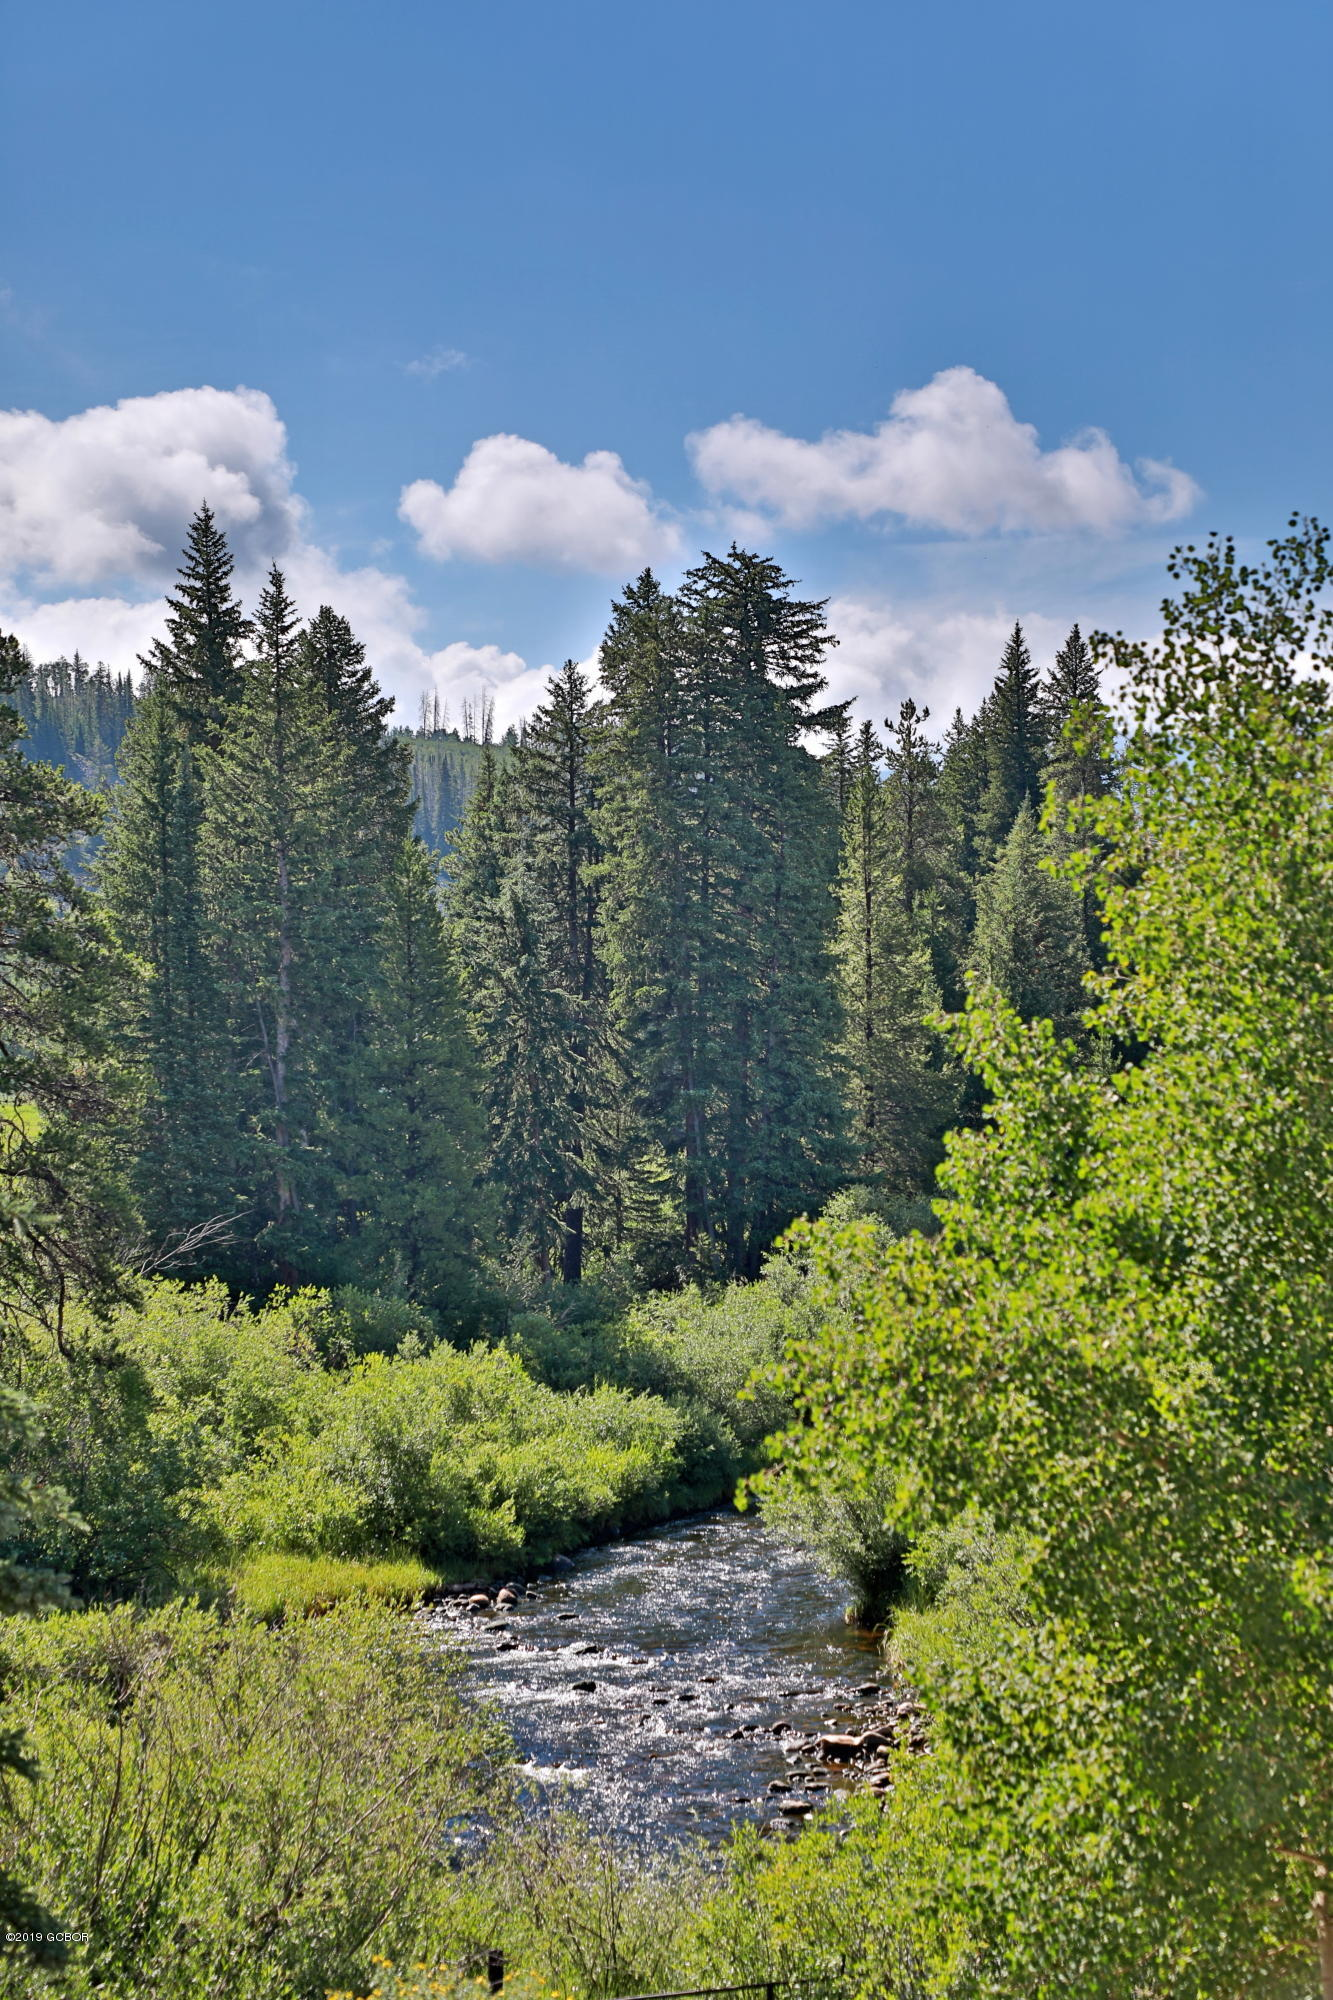 MLS# 19-1127 - 5 - 186 Hi Country Drive #, Winter Park, CO 80482